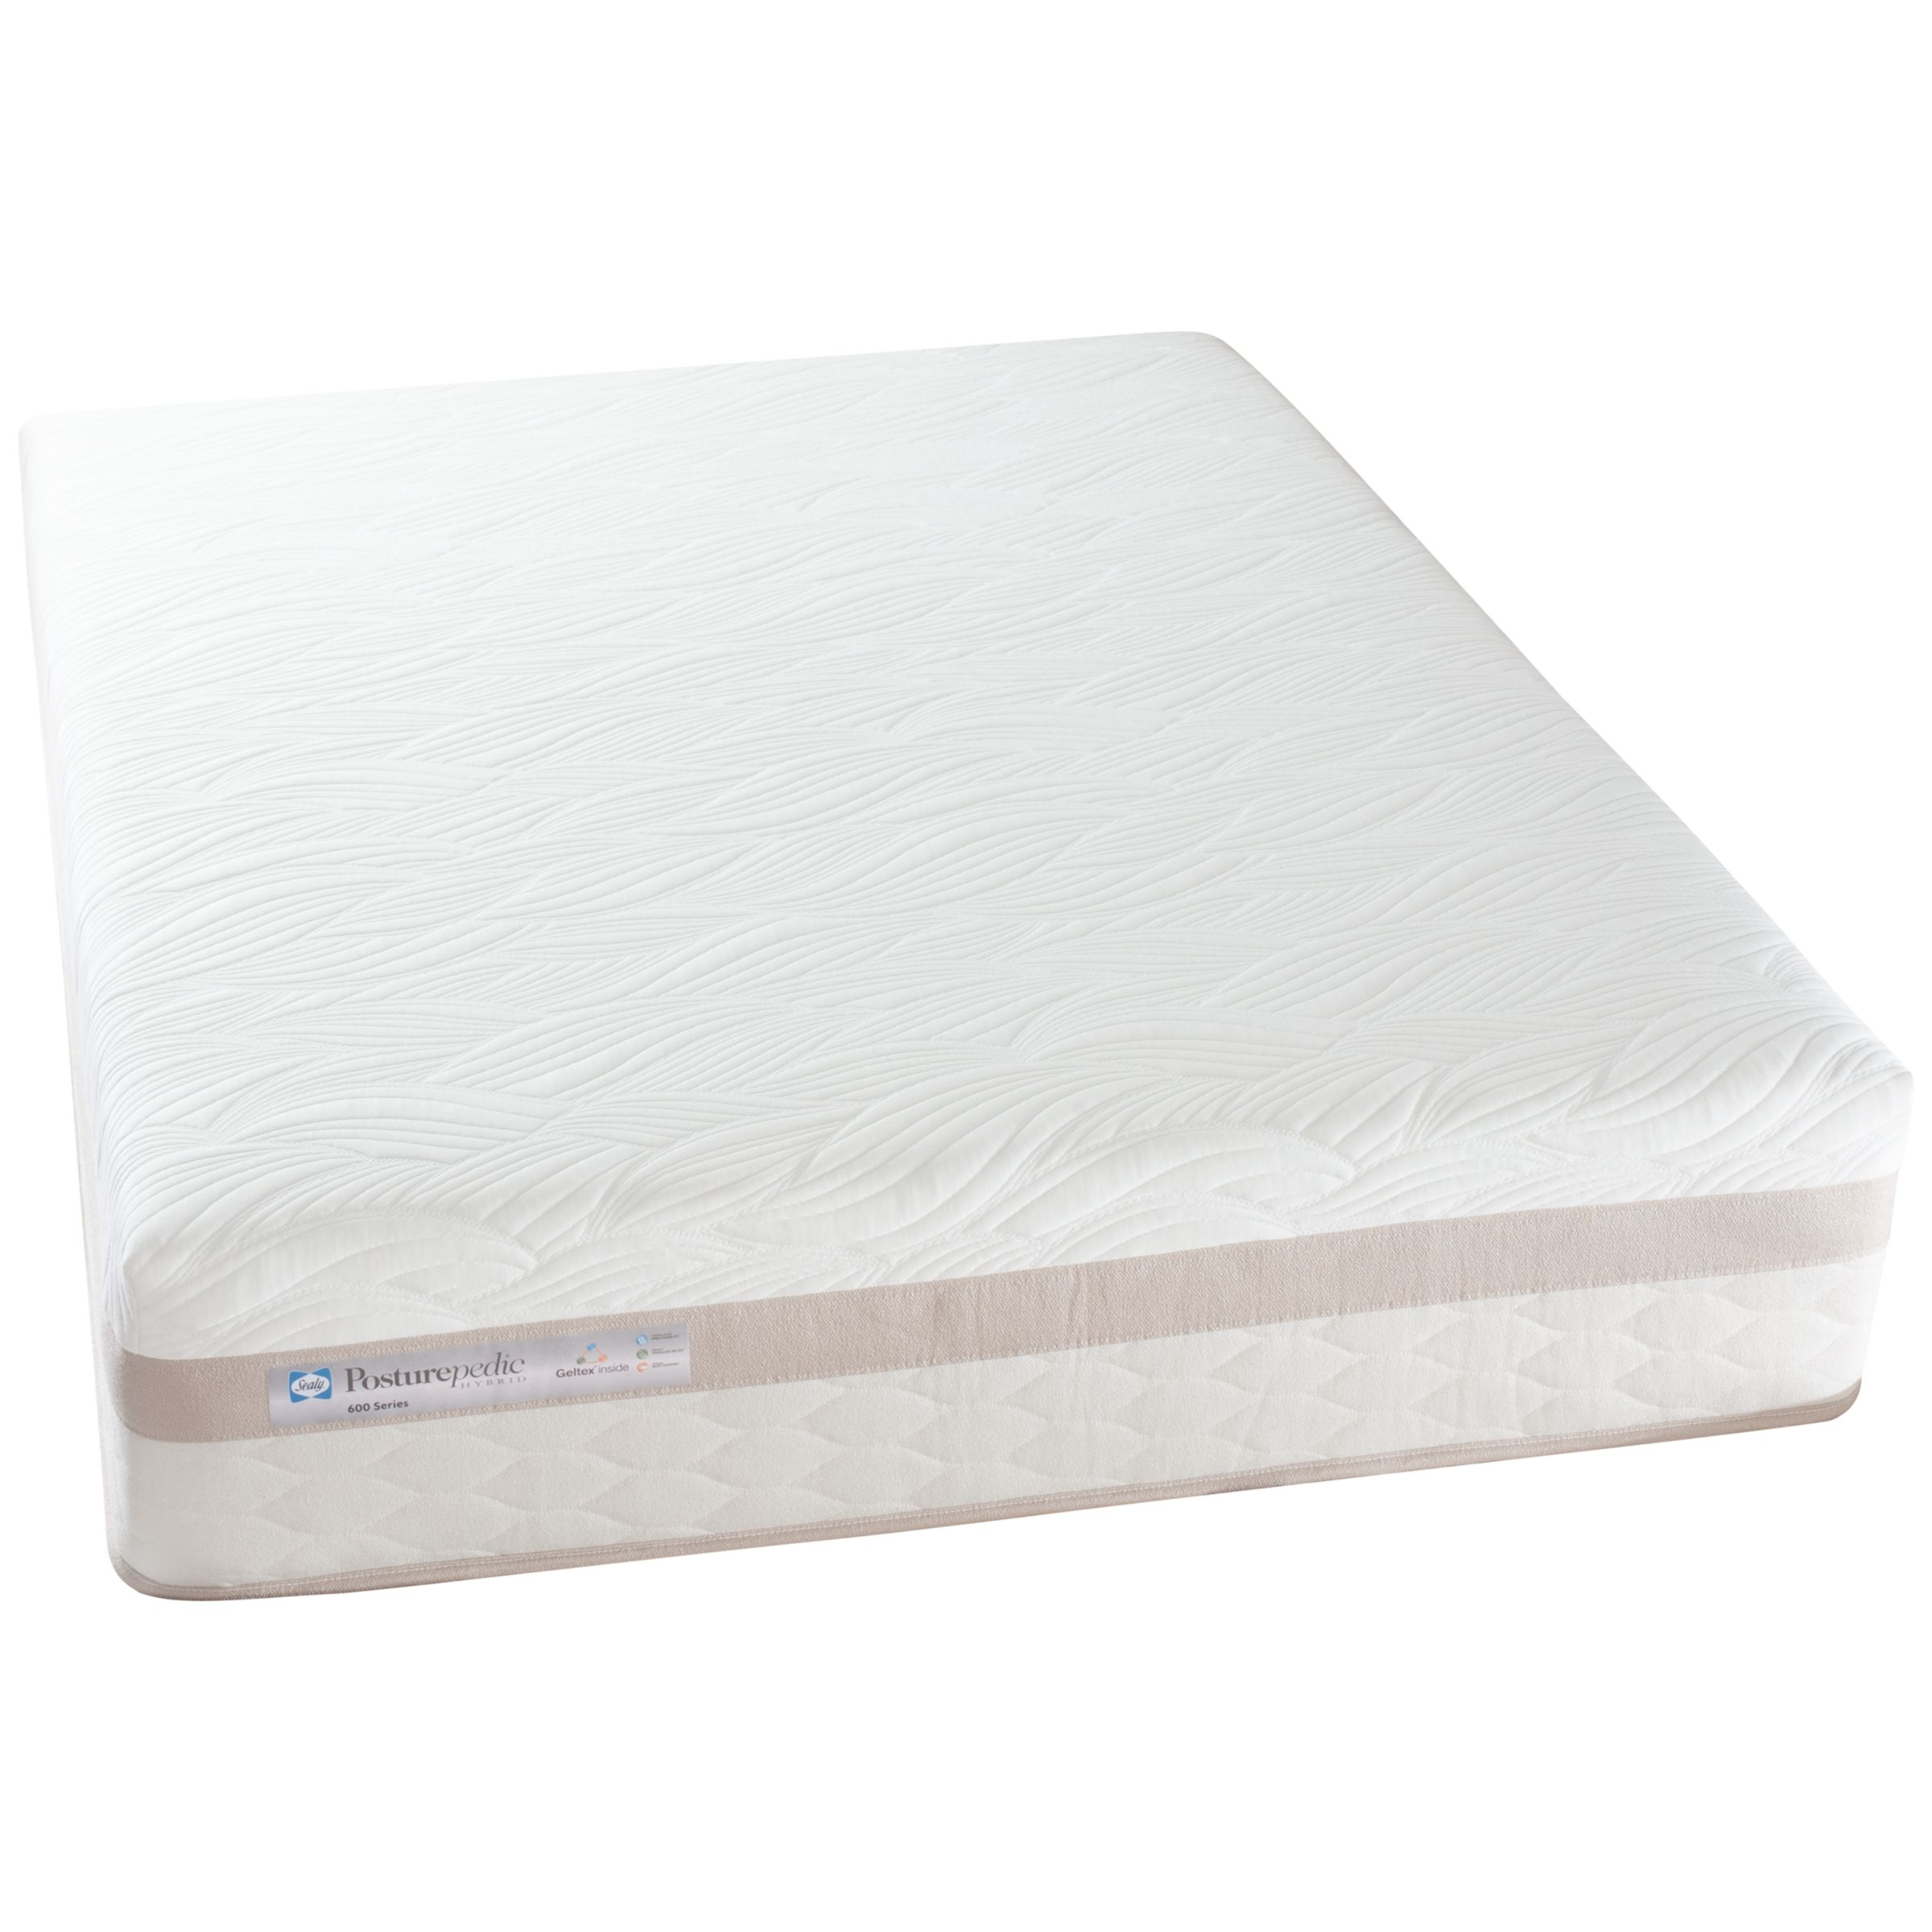 Sealy Posturepedic Hybrid Series 600 Mattress, Double